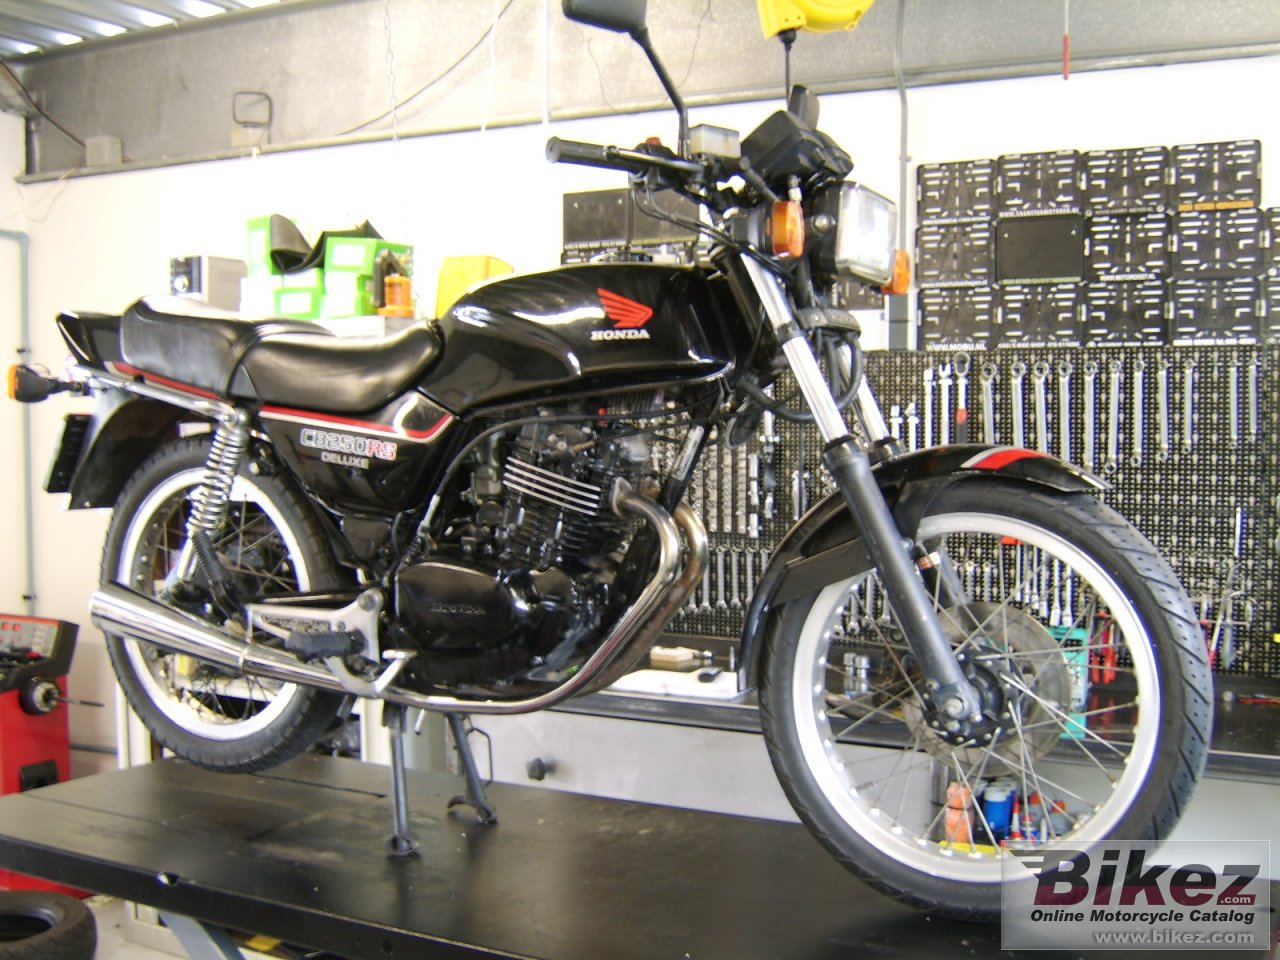 Big nymous user. cb 250 rsd picture and wallpaper from Bikez.com